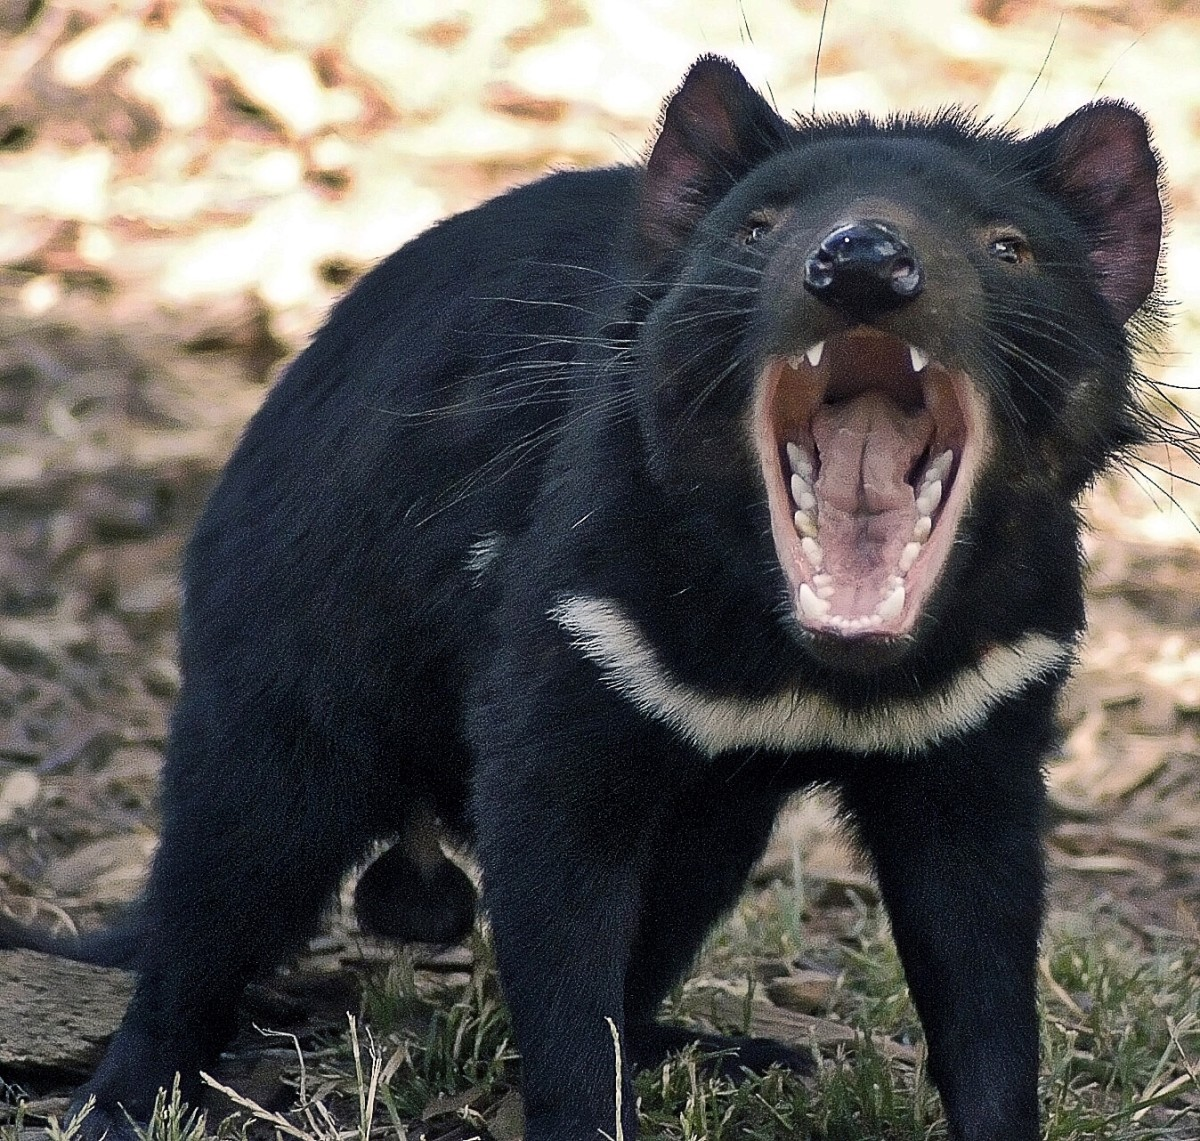 An animal at the Tasmanian Devil Conservation Park